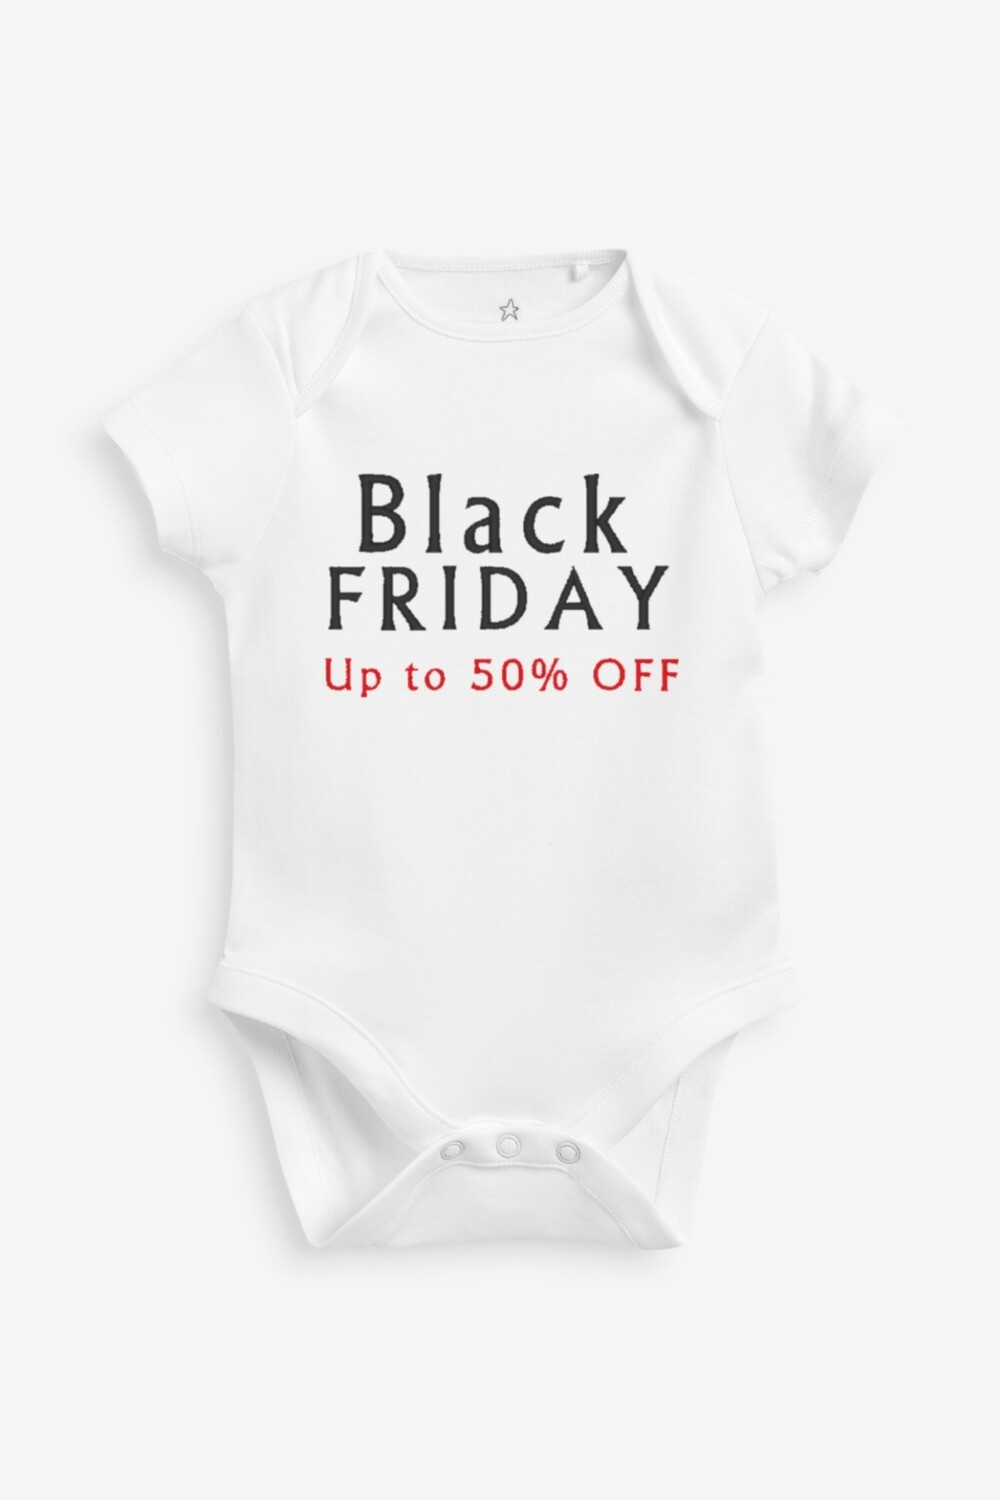 New Born 0-3 Months Black Friday special Body